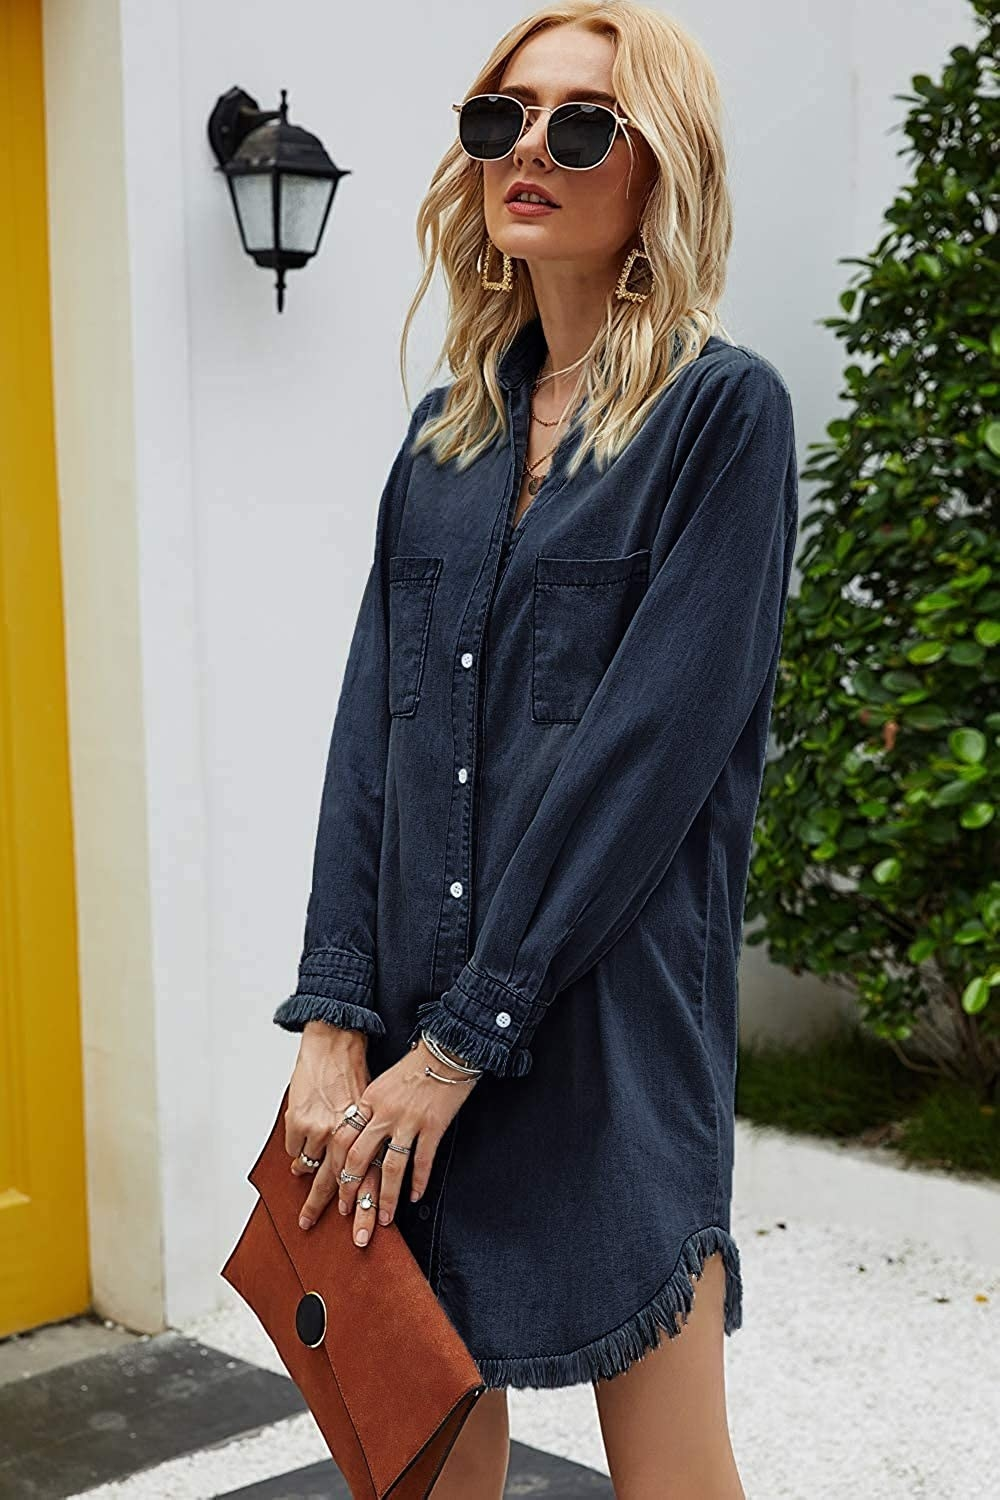 A model wearing the long-sleeved mini dress with frayed cuffs in dark wash denim